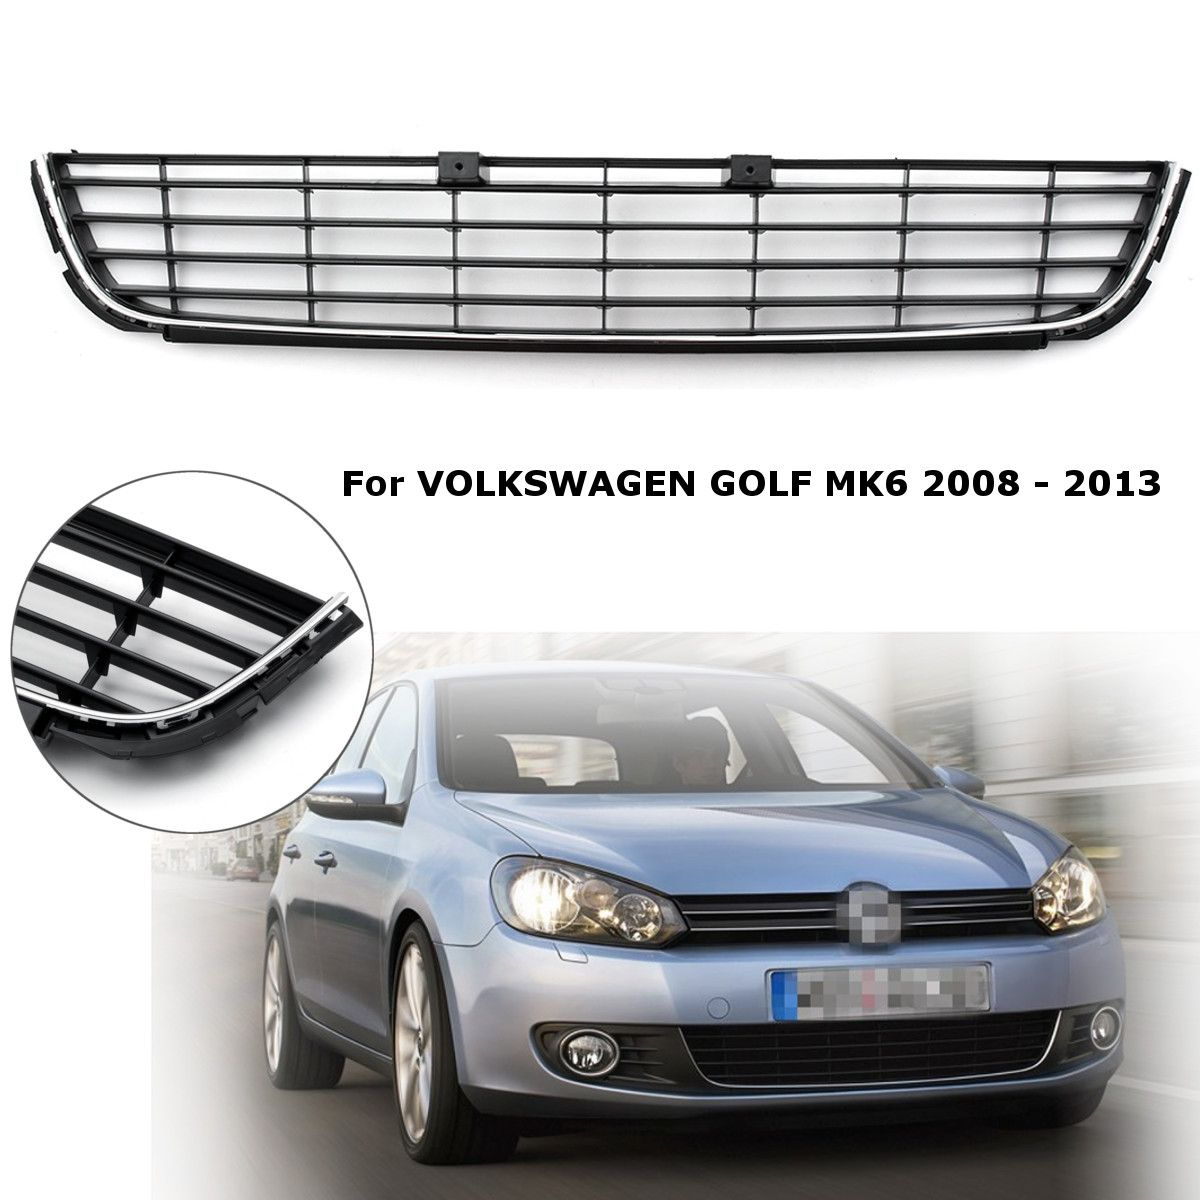 for VW GOLF MK6 2008 2009 2010 21011 2012 2013 Car Front Lower Center Bumper Grille Panel Chrome Trim